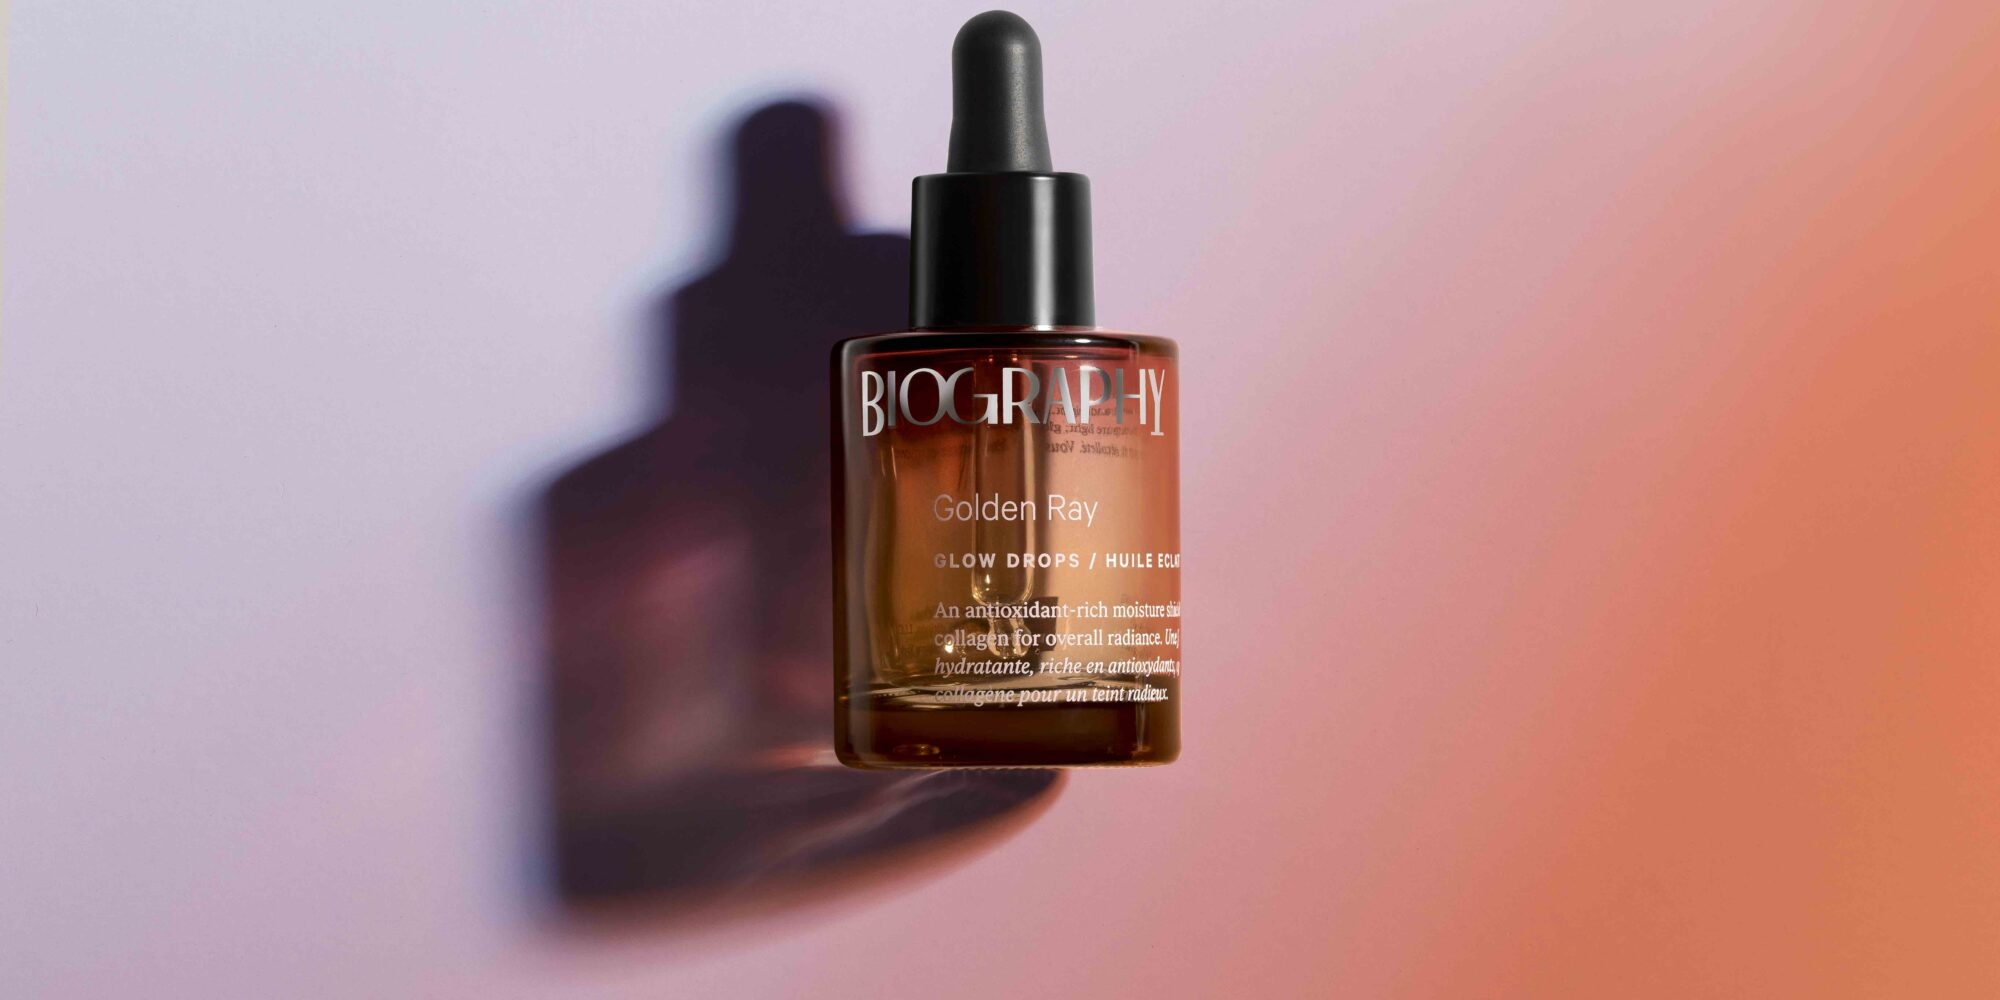 Biography Tells Its Story Of Active Face Oils At Clean Beauty Retailer Onda Beauty